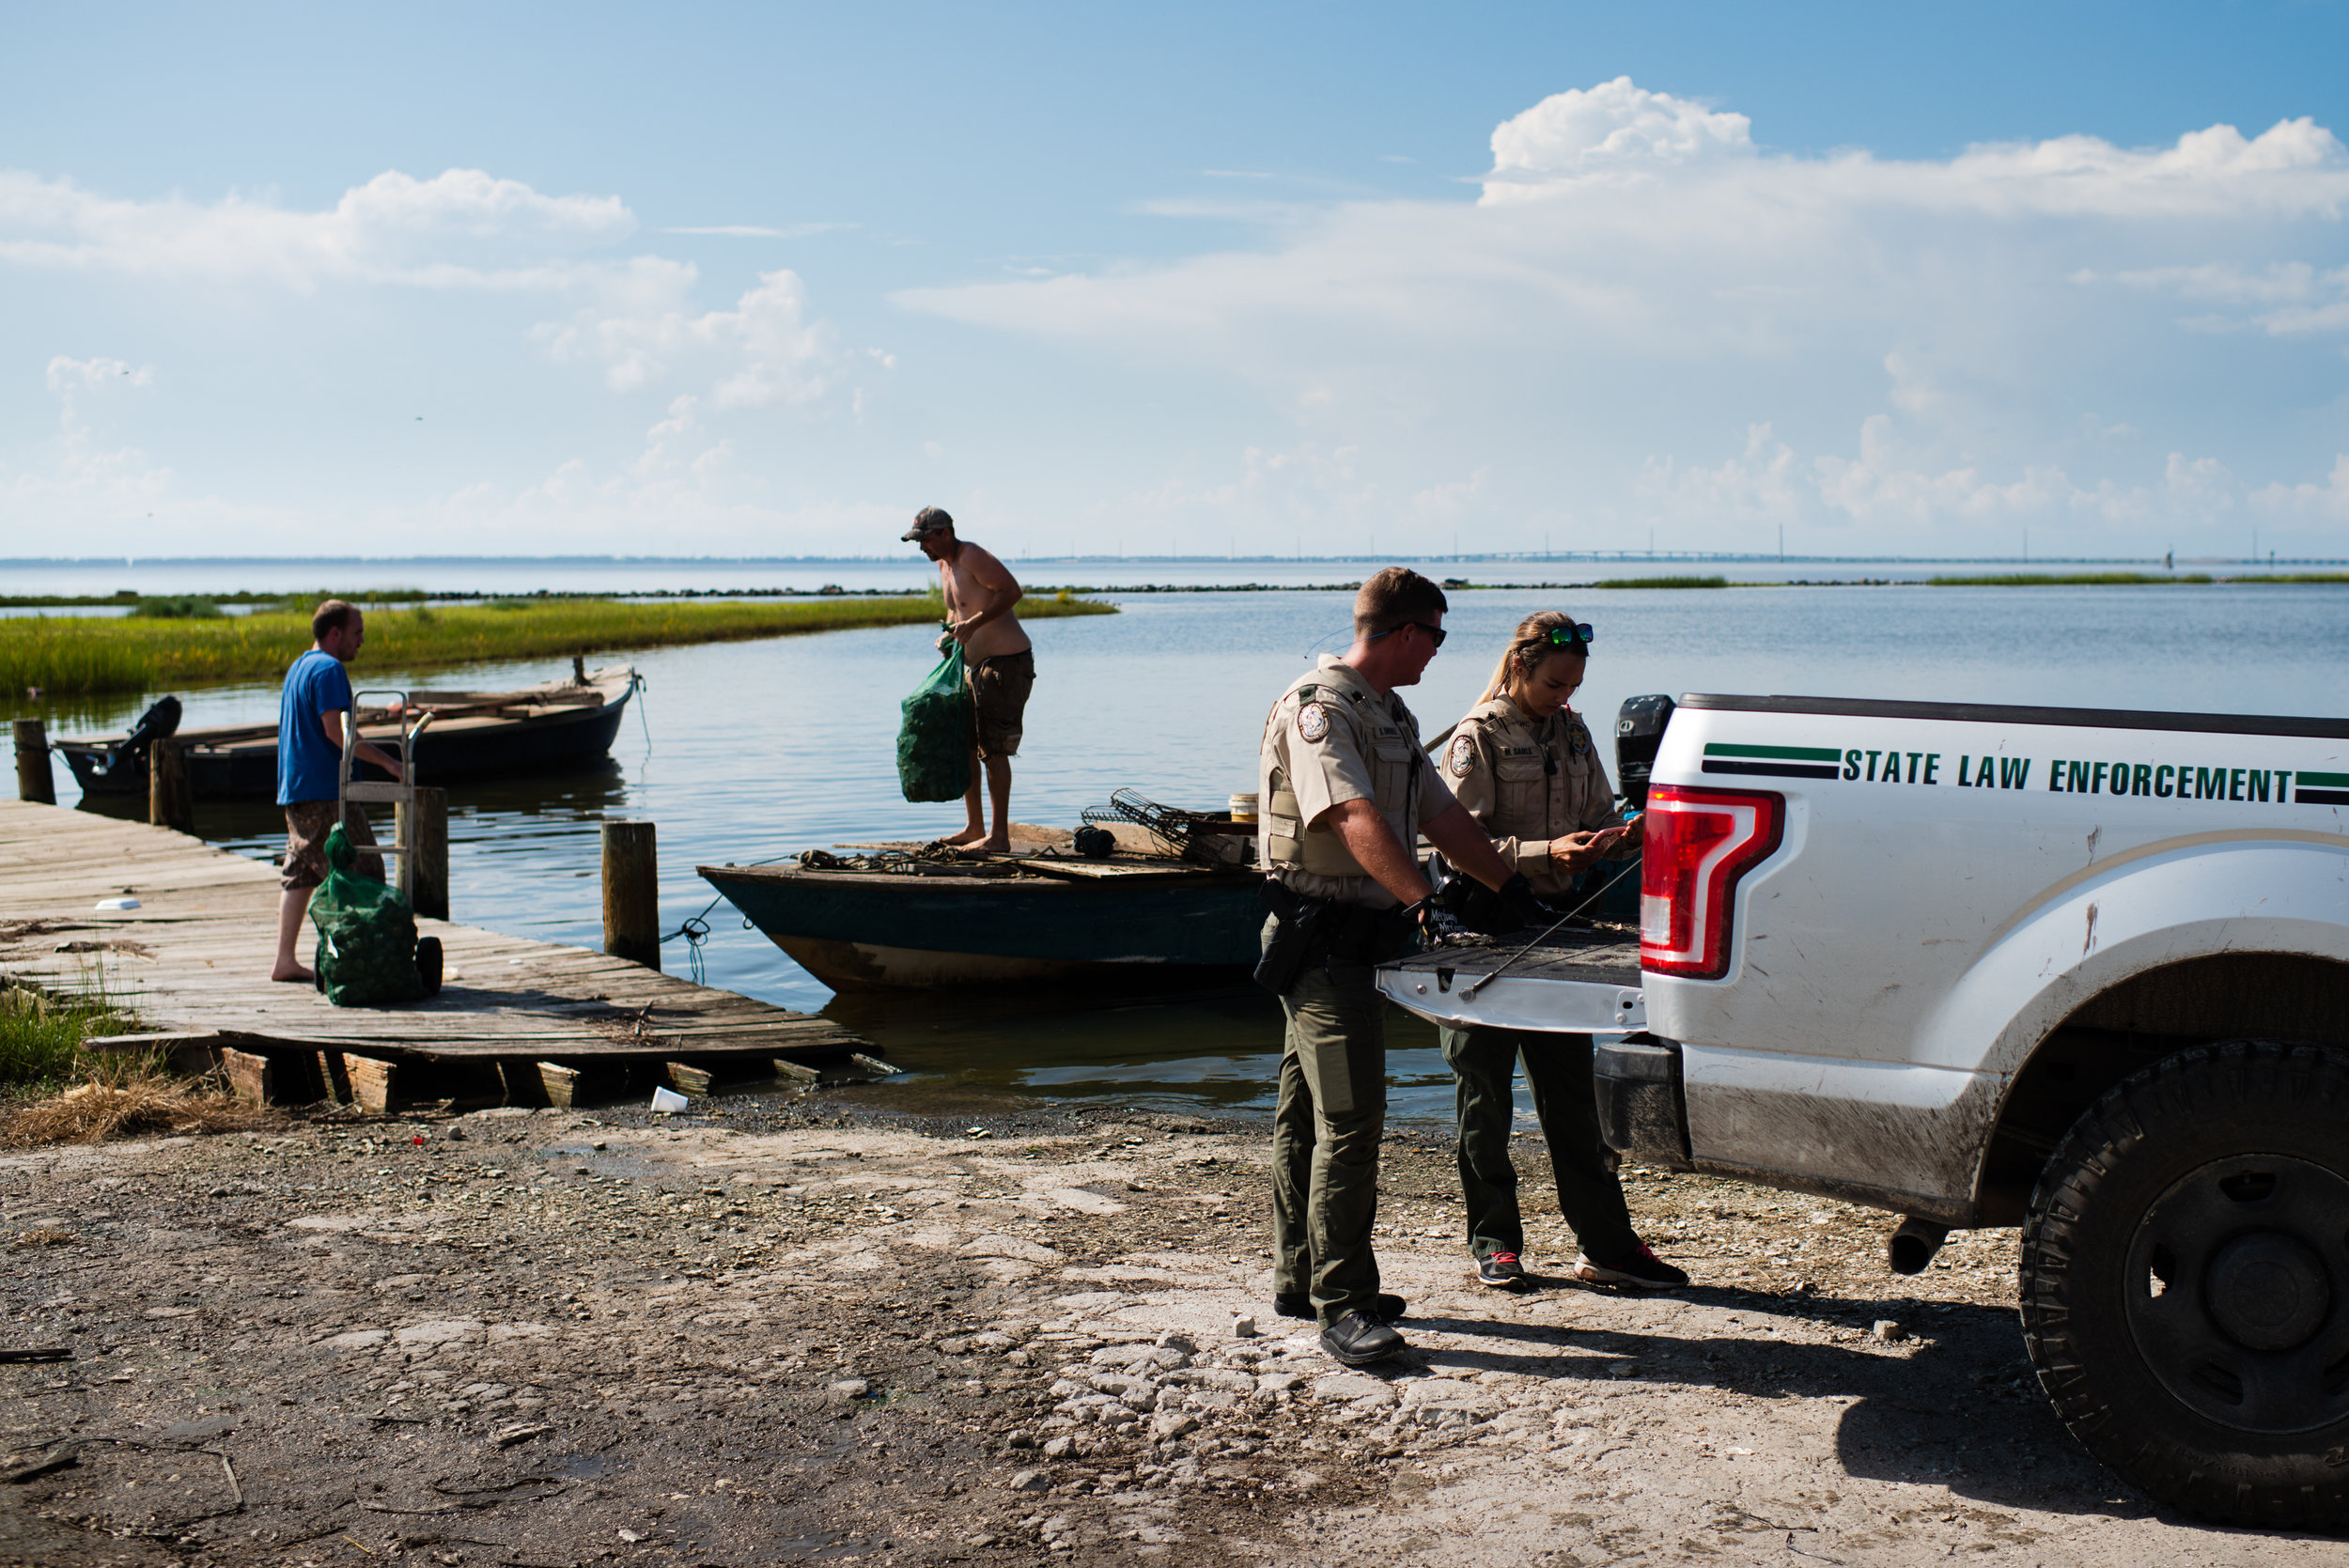 Florida State Law Enforcement agents inspect oyster boats arriving at a seafood wholesaler where they sell their catch. Due to the sharp decline in the oyster population of the bay, the state and local authorities have placed strong restrictions on oyster production. During summer months, oystermen can only work on the water from sunrise to 11am. They are only allowed a maximum (which they never reach) of two 50lbs bags per person and all oysters much be at least 3 inches. Cheating is common and fines are steep, $550 if caught.